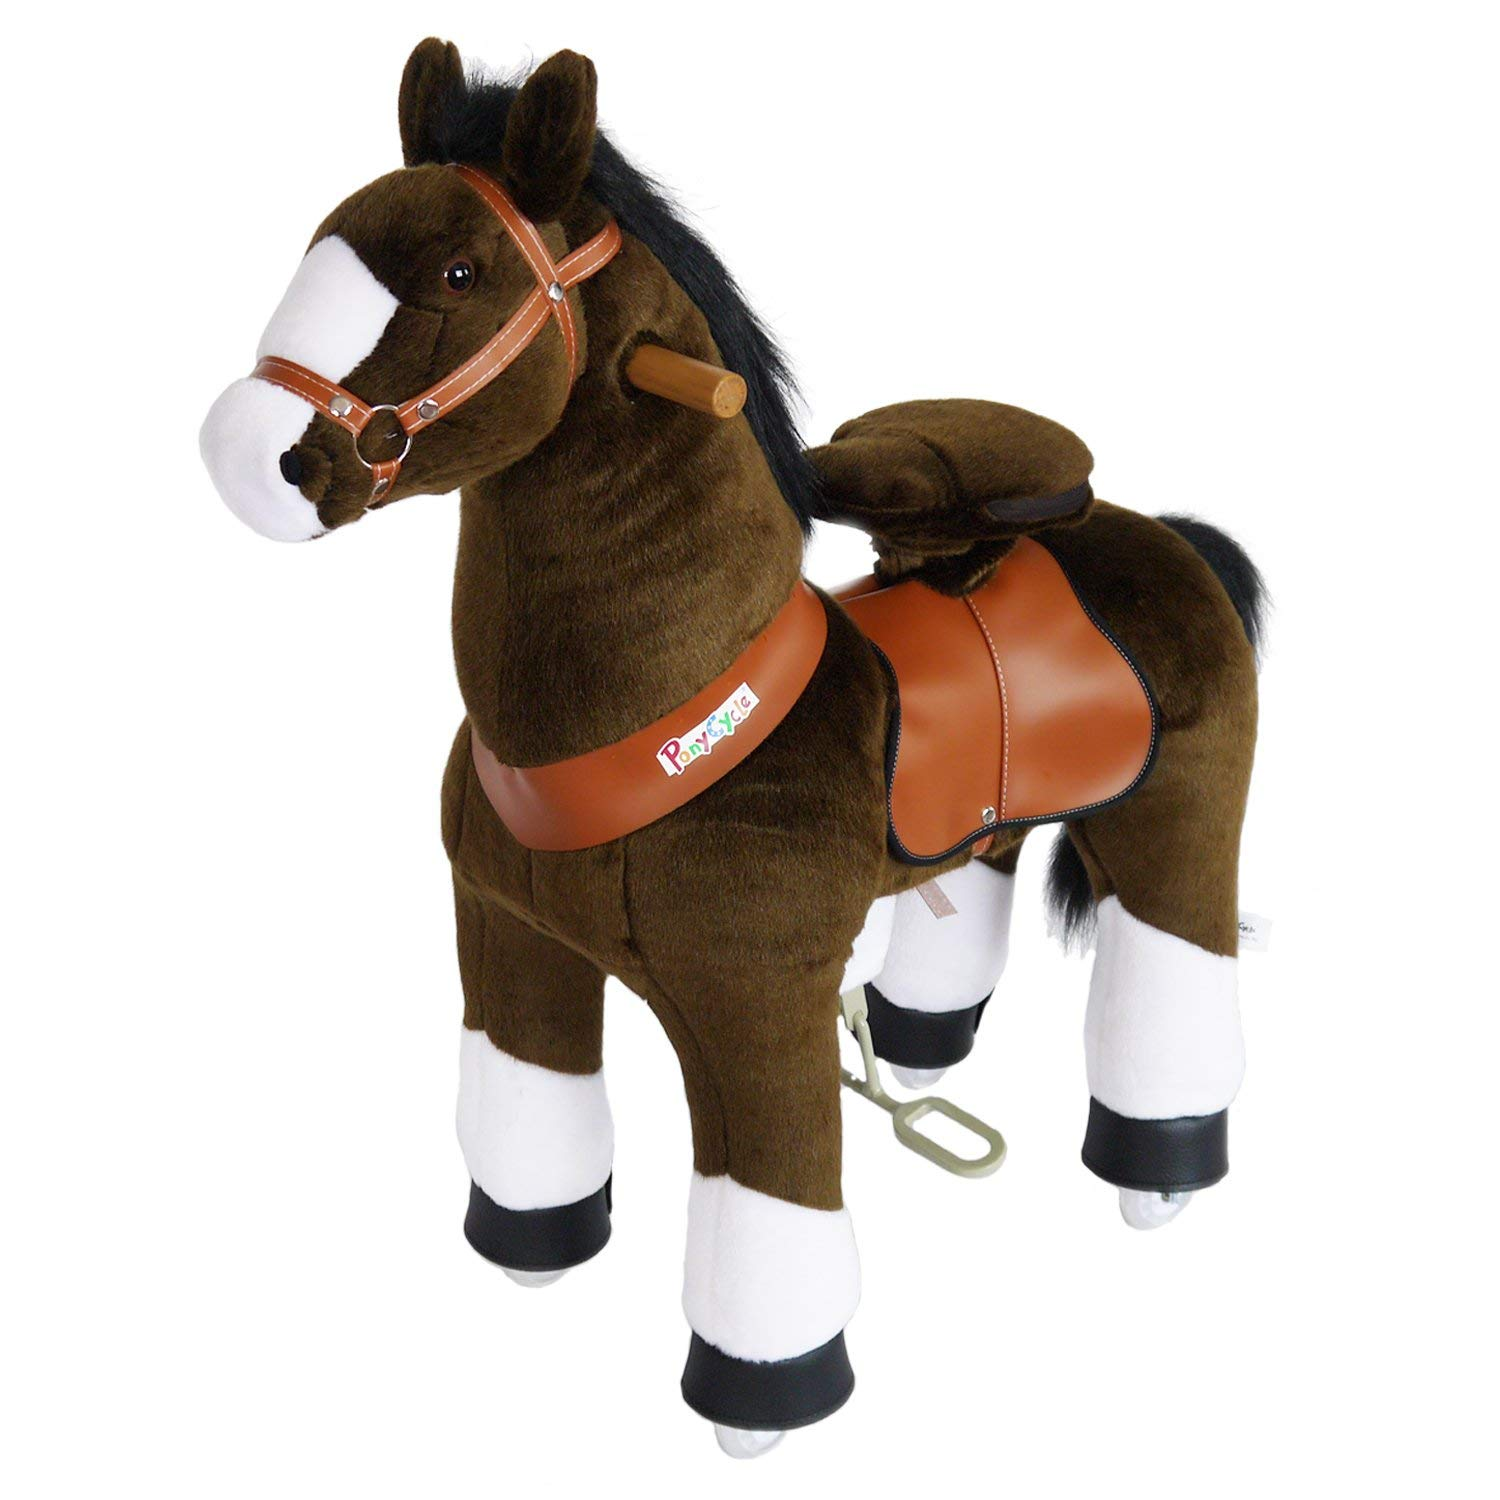 PonyCycle - Chocolate brown with white hoof - Age 4-10